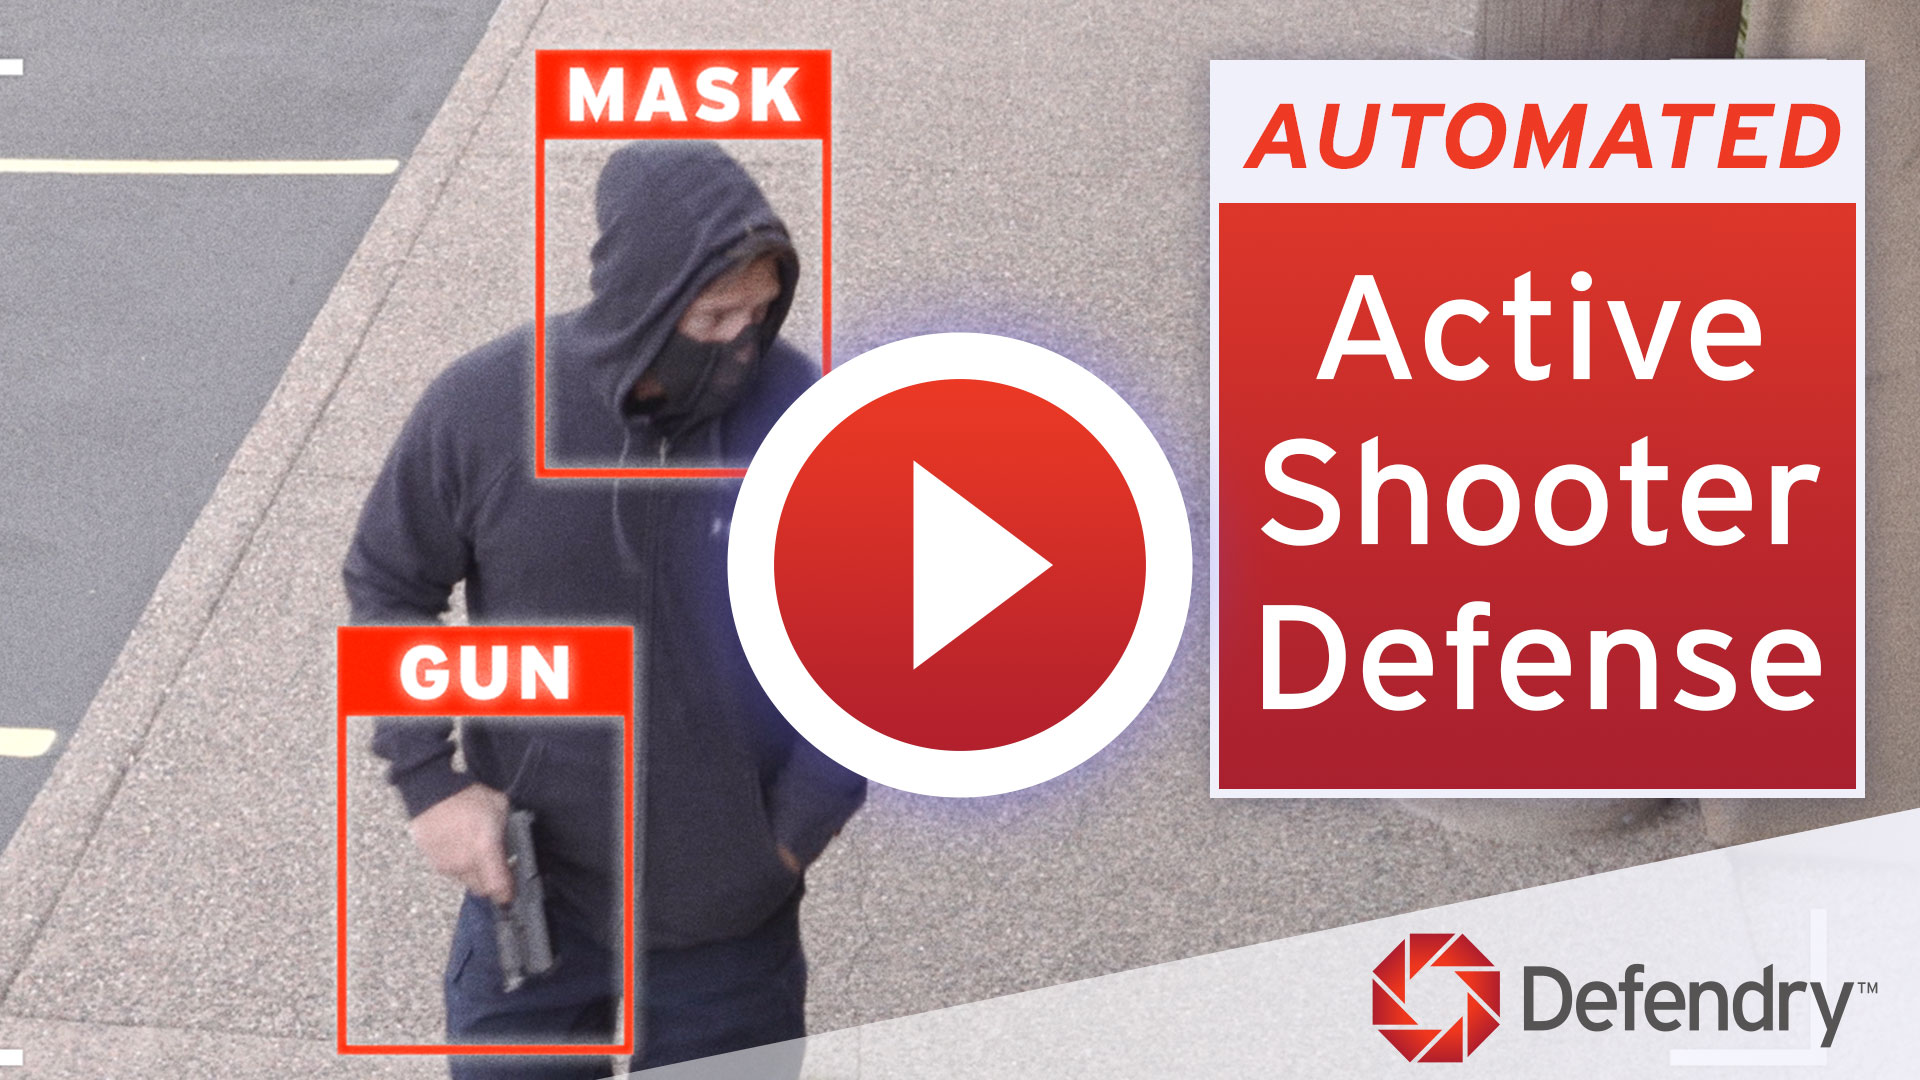 Active Shooter Defense with Defendry